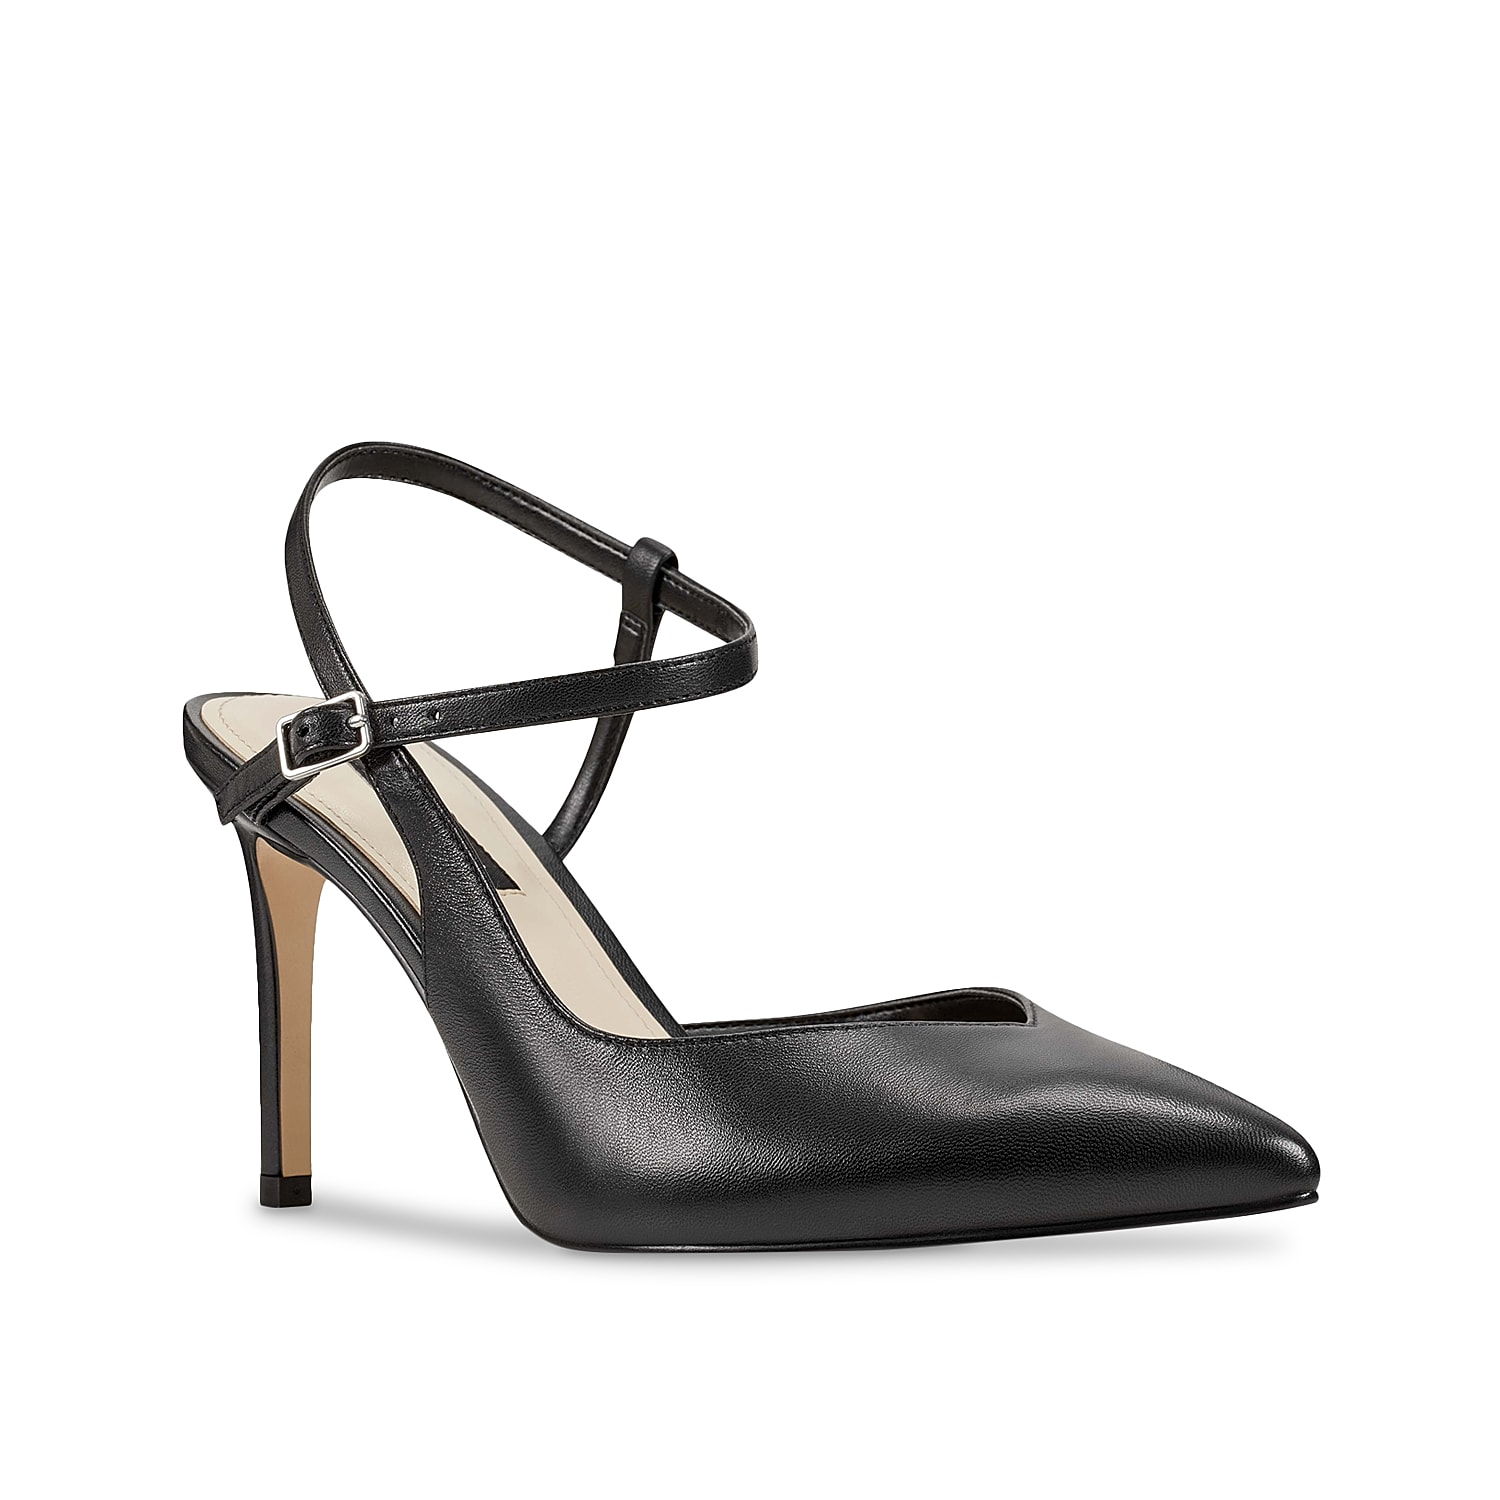 Bring on the sophistication when wearing the Elisa pump from Nine West. This leather silhouette is fashioned with a skinny heel and pointy toe that gives your ensemble a chic finishing touch!